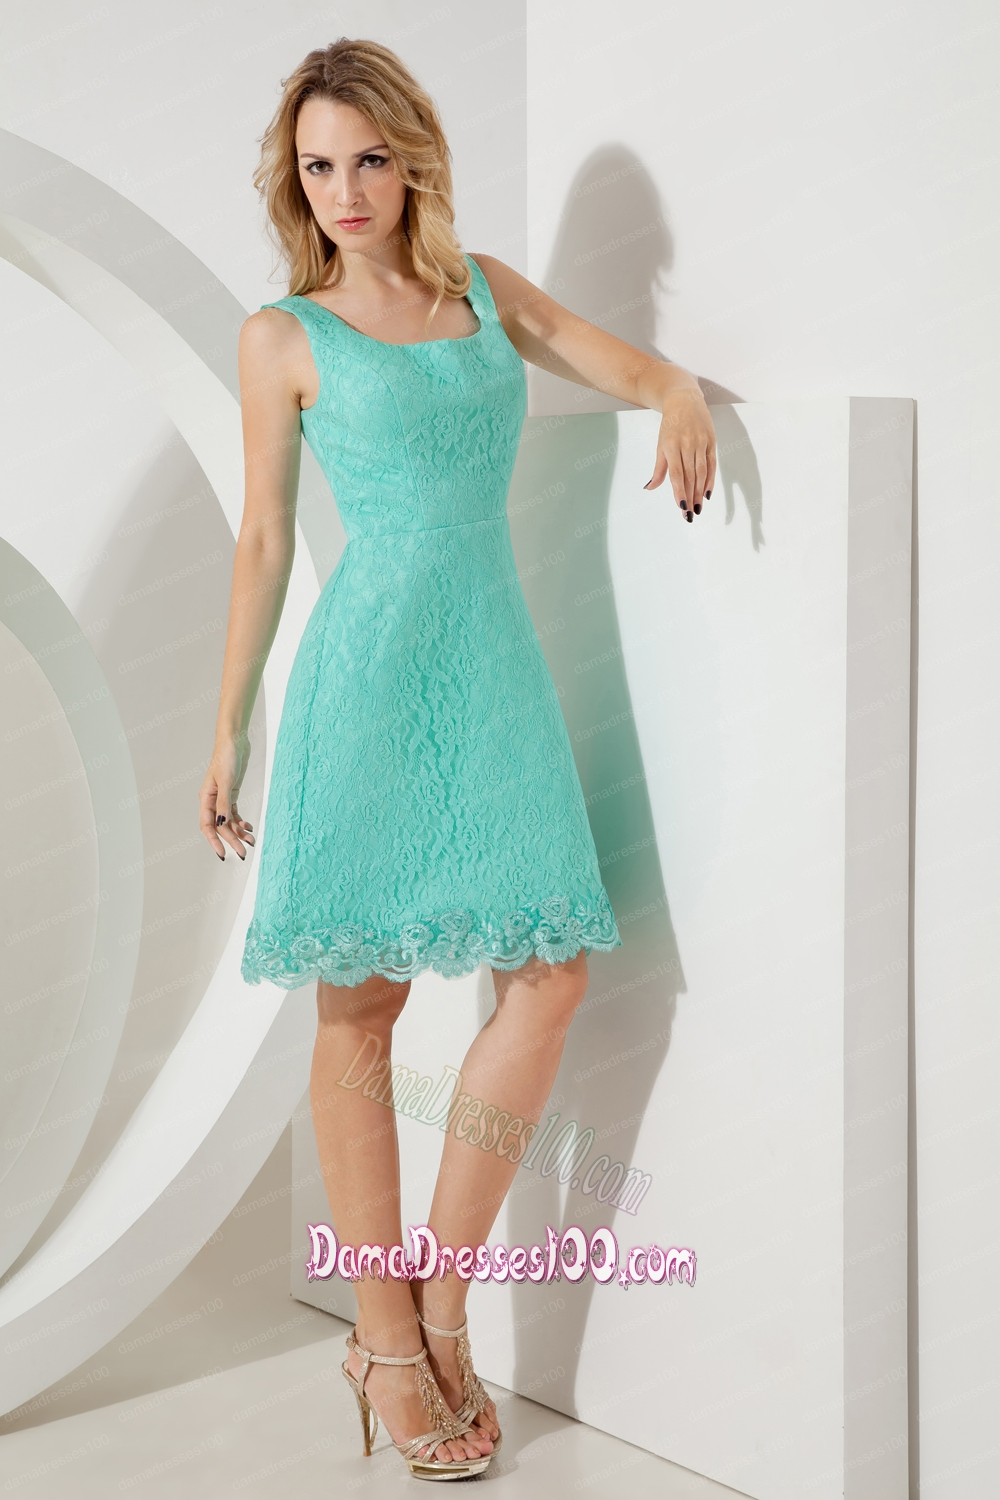 Turquoise A-line / Pricess Square Dama Dress Mini-length Lace